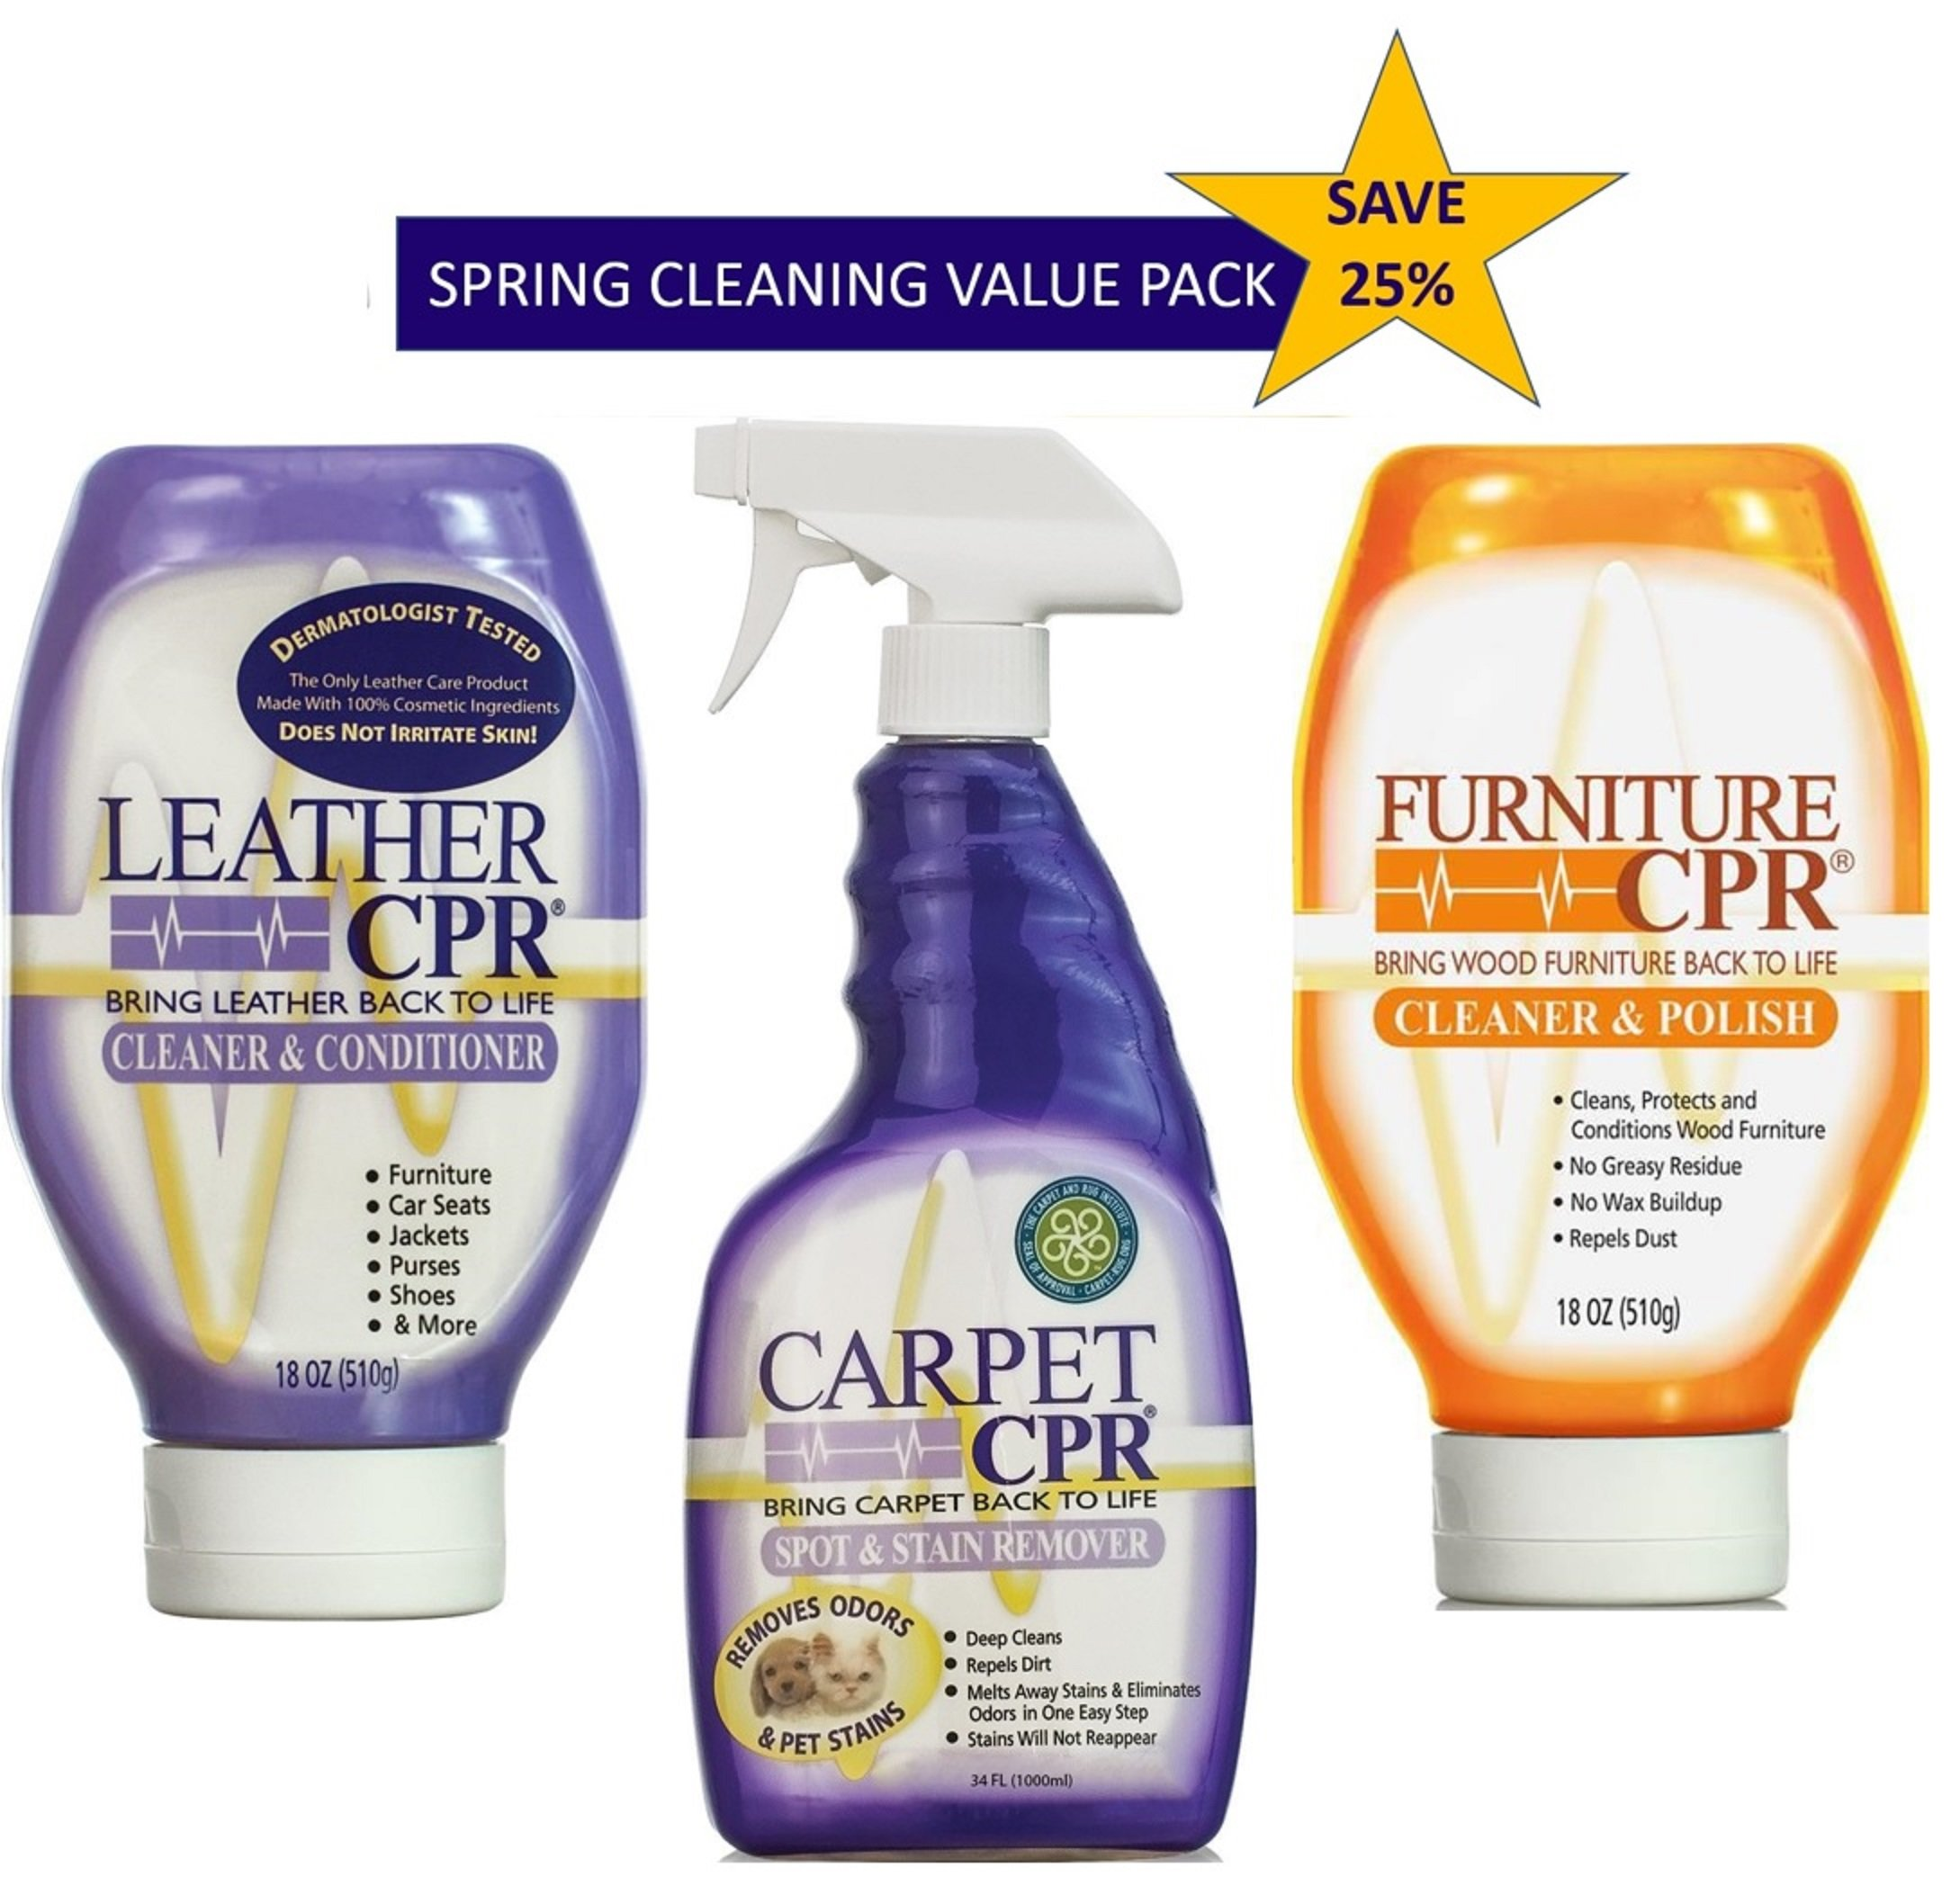 Leather-Carpet-Furniture CPR - Spring Cleaning Value Pack – Clean & Condition Leather, Treat Carpet Stains, and Spruce Up Your Wood Furniture With This 3-in-1 Savings by CPR Cleaning Products (Image #1)